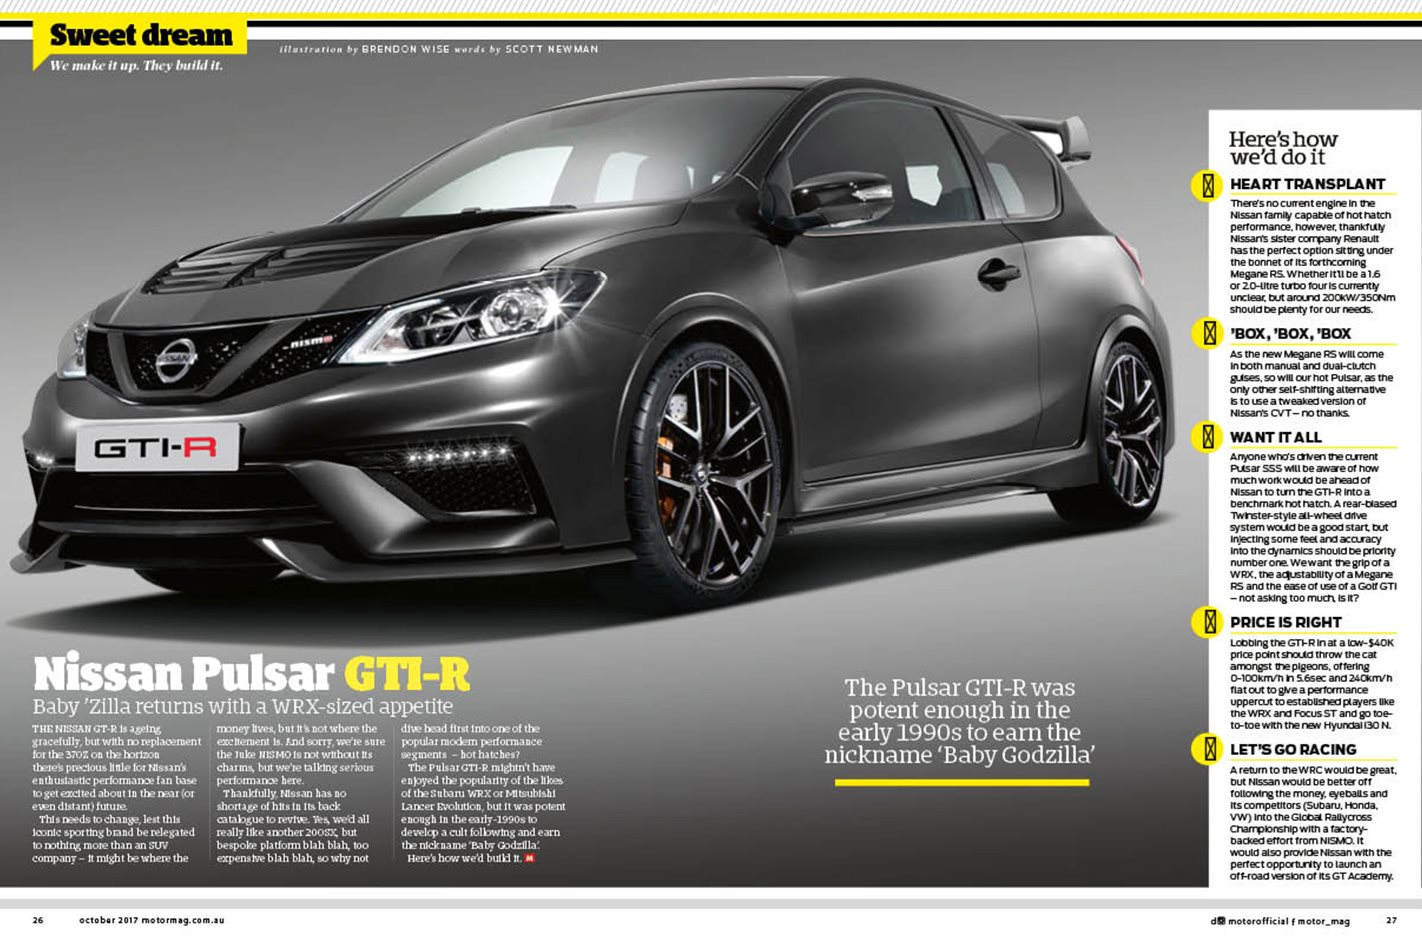 Nissan-Pulsar-sweet-dream-October-MOTOR-Issue.jpg